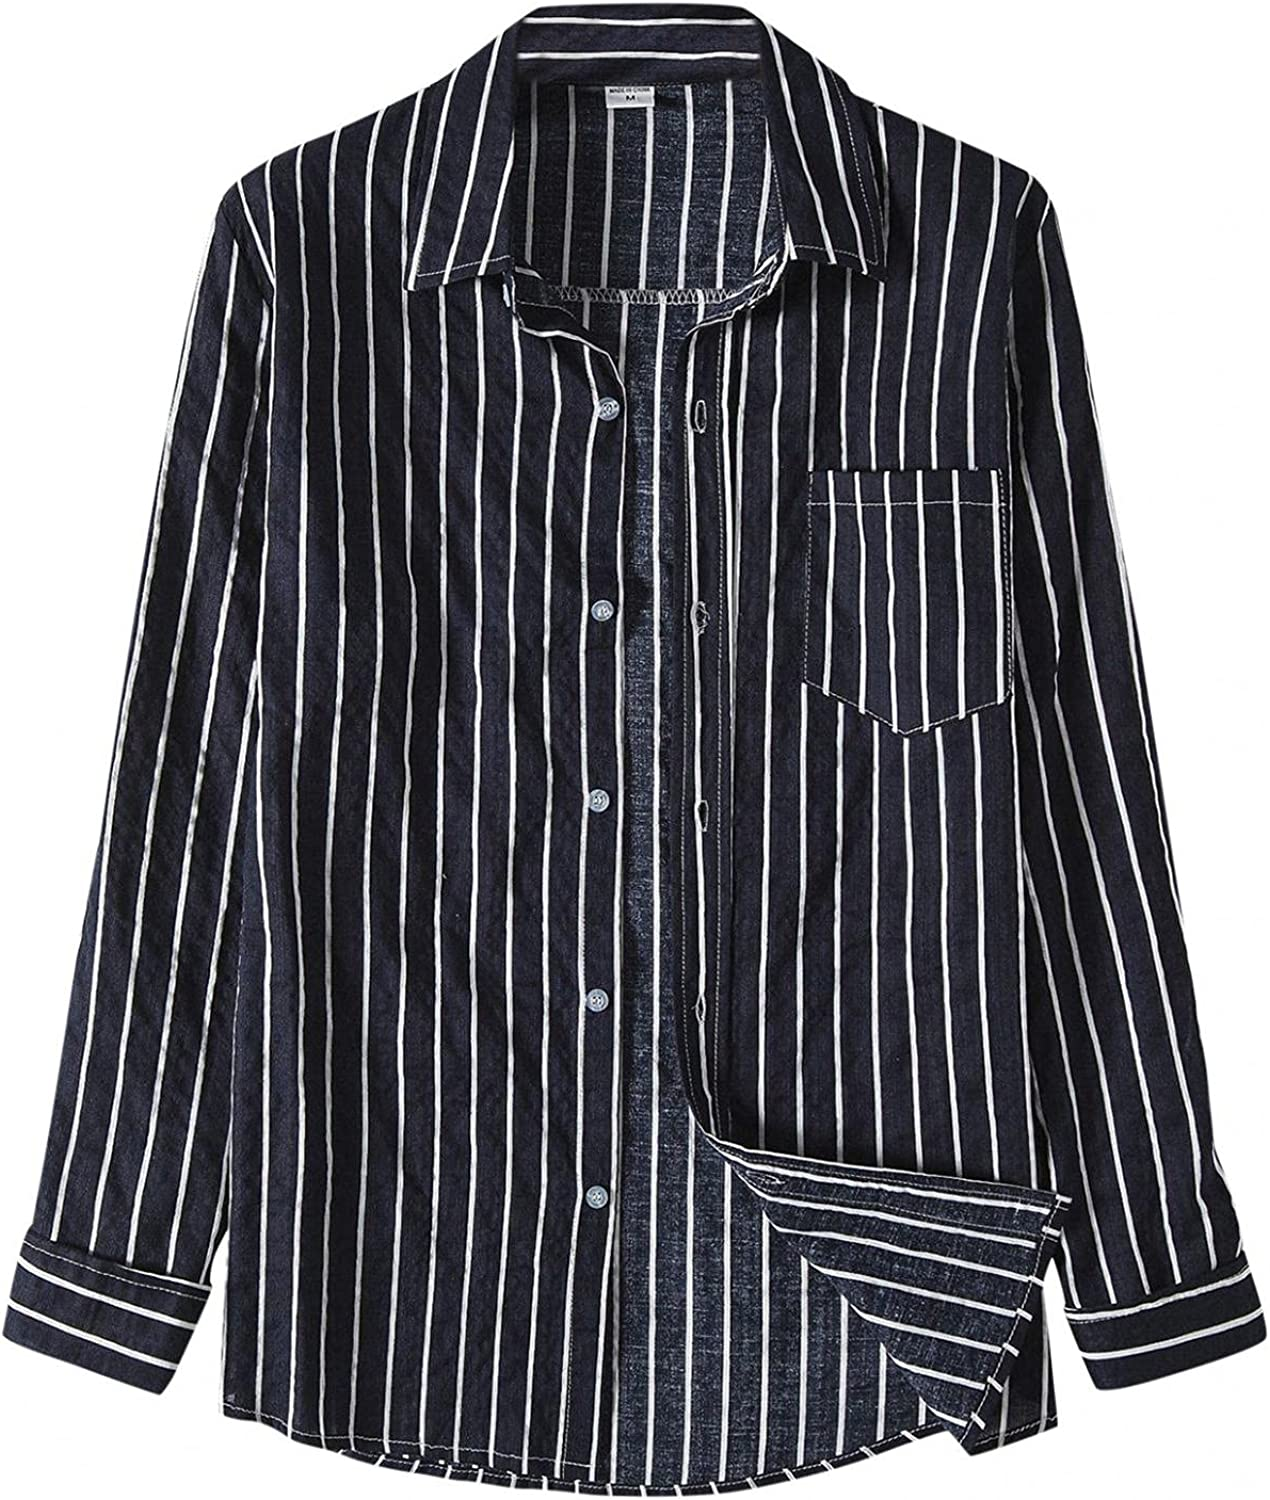 Aayomet Shirts for Men Striped Casual Long Sleeve Button Down T-Shirt Plain Pocket Loose Beach Tee Shirts Tops